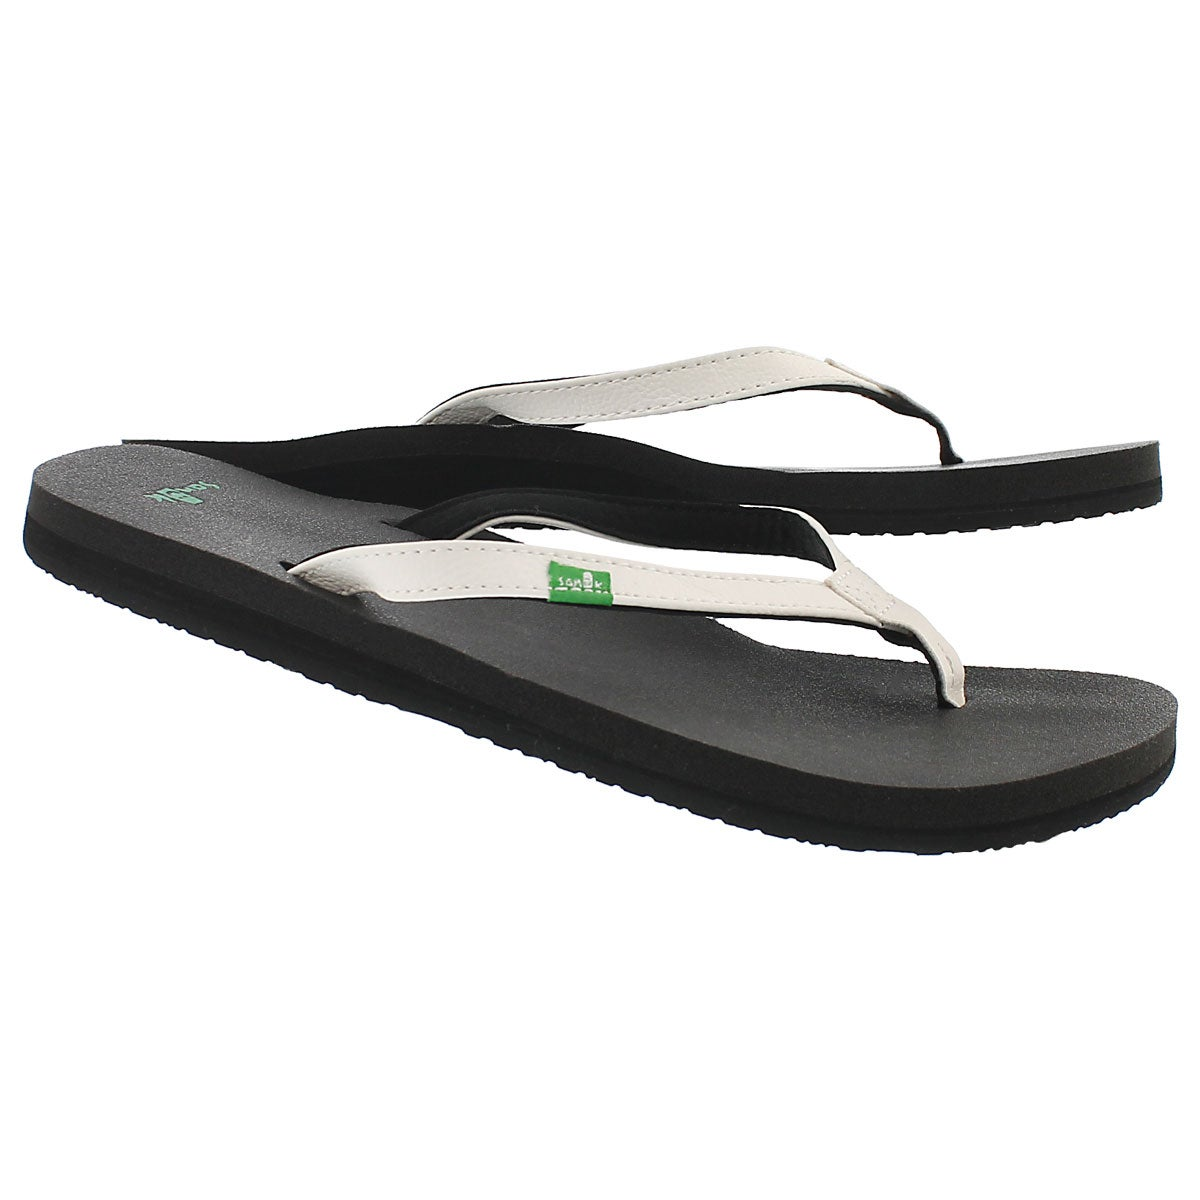 Lds Yoga Joy white flip flop